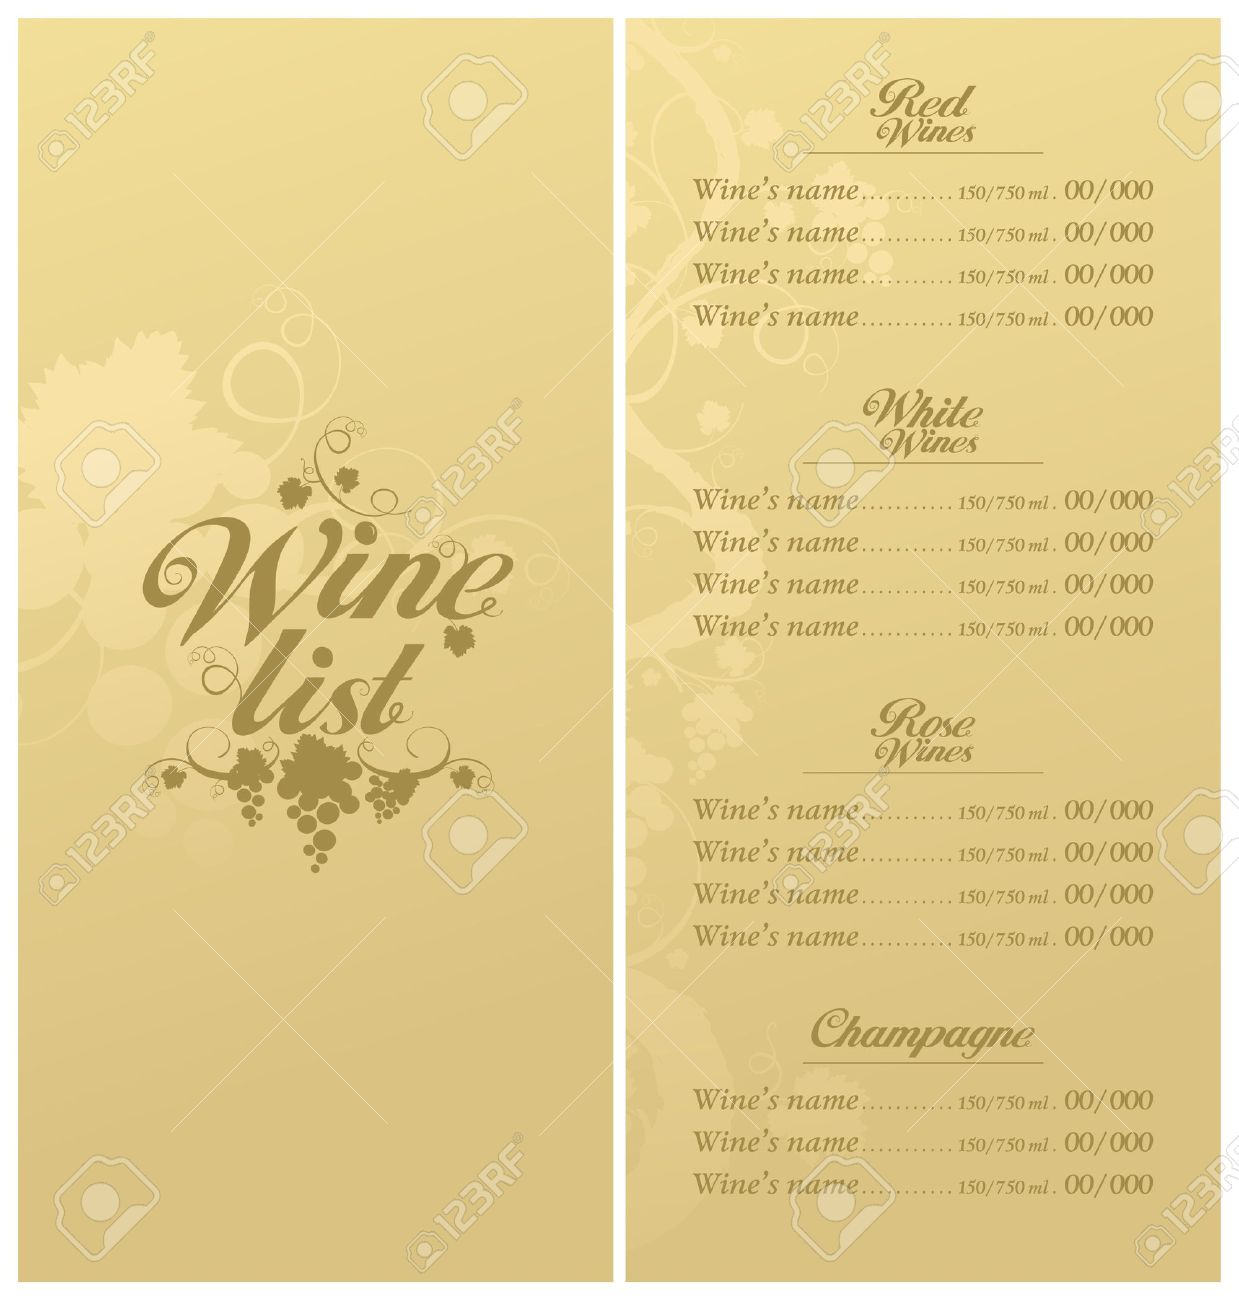 Wine List Menu Card Design Template. Royalty Free Cliparts ...